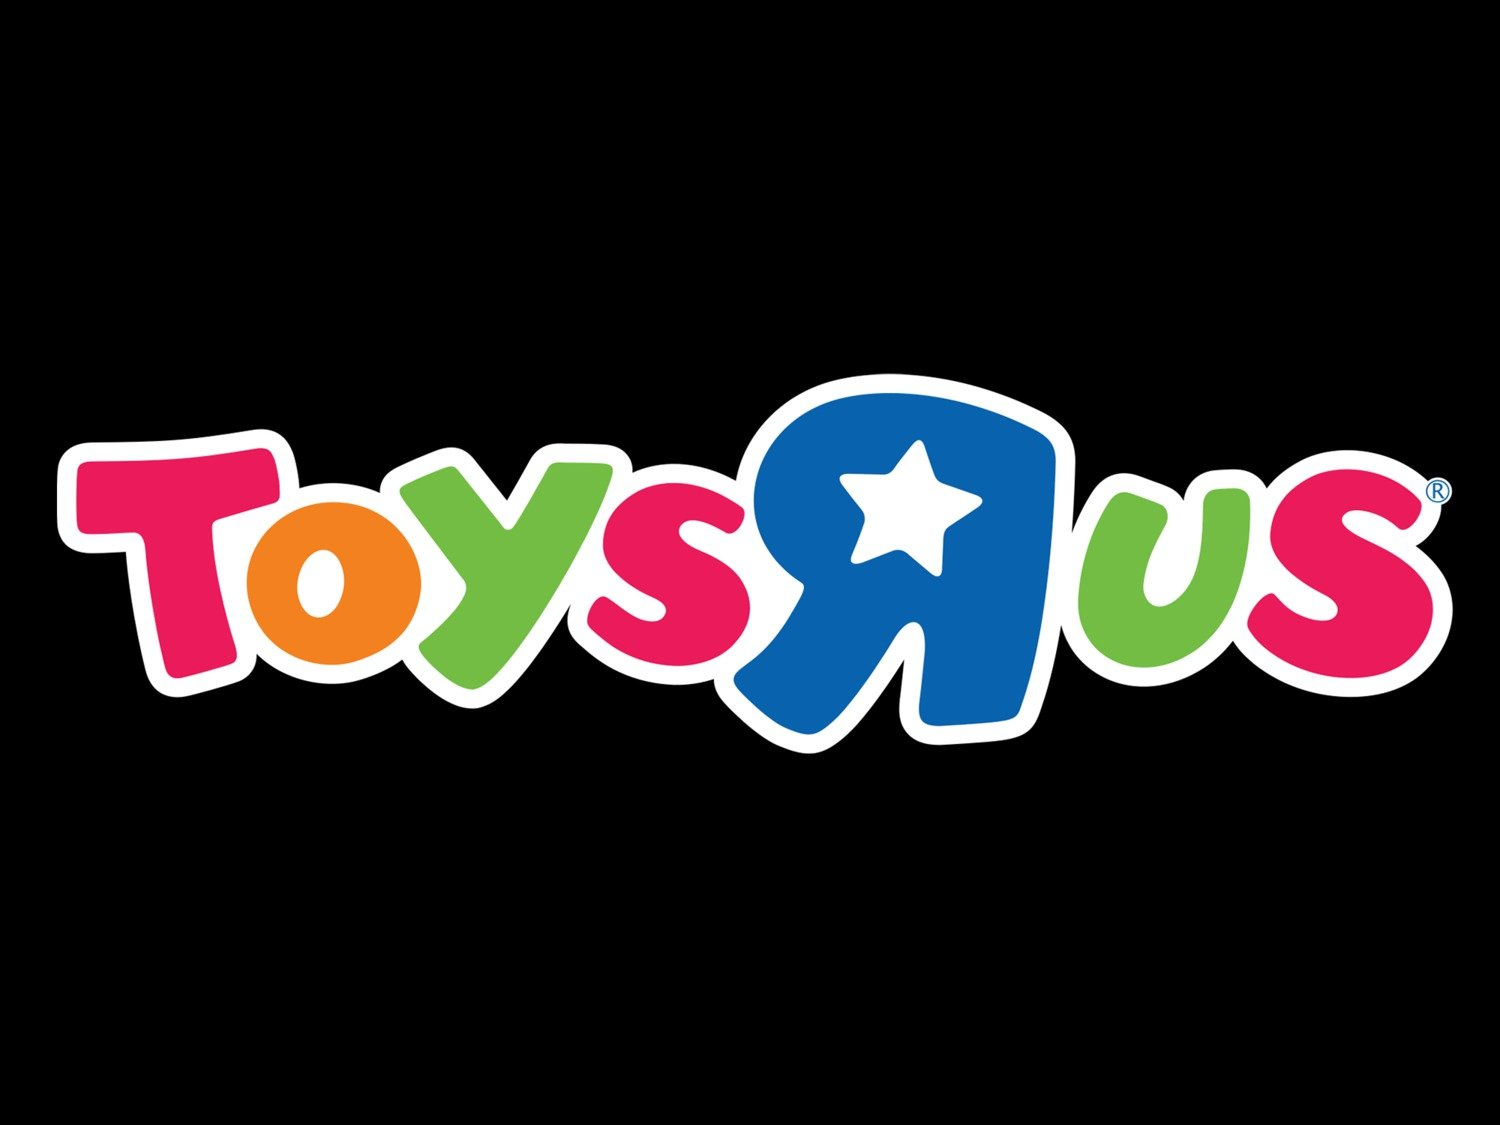 Toys R Us planning to close 200 more stores, report says